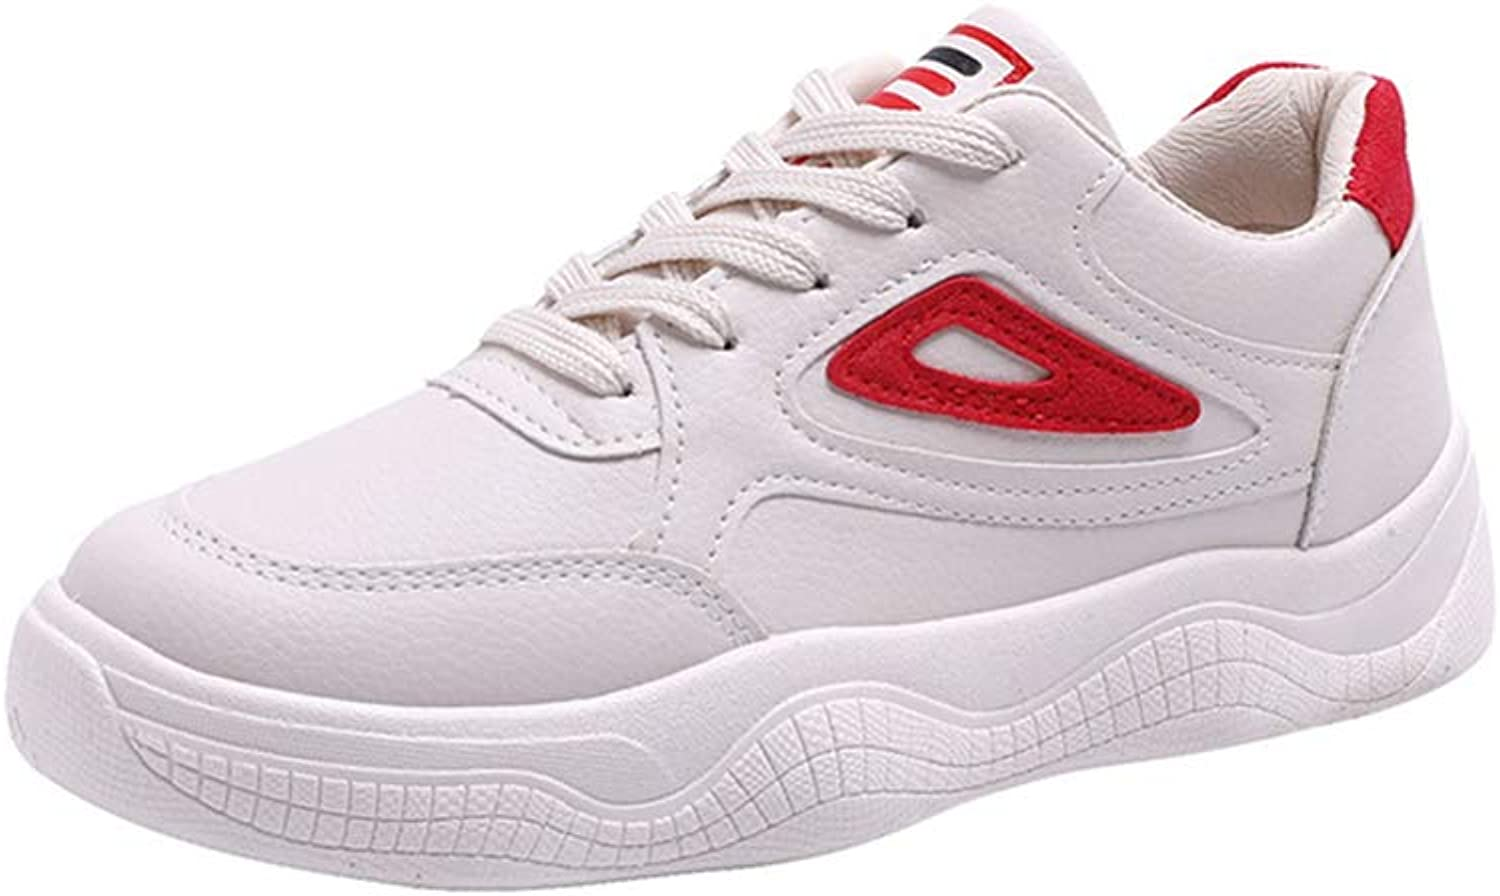 ProDIgal Women's Sports shoes - Casual Leather Lightweight Running shoes